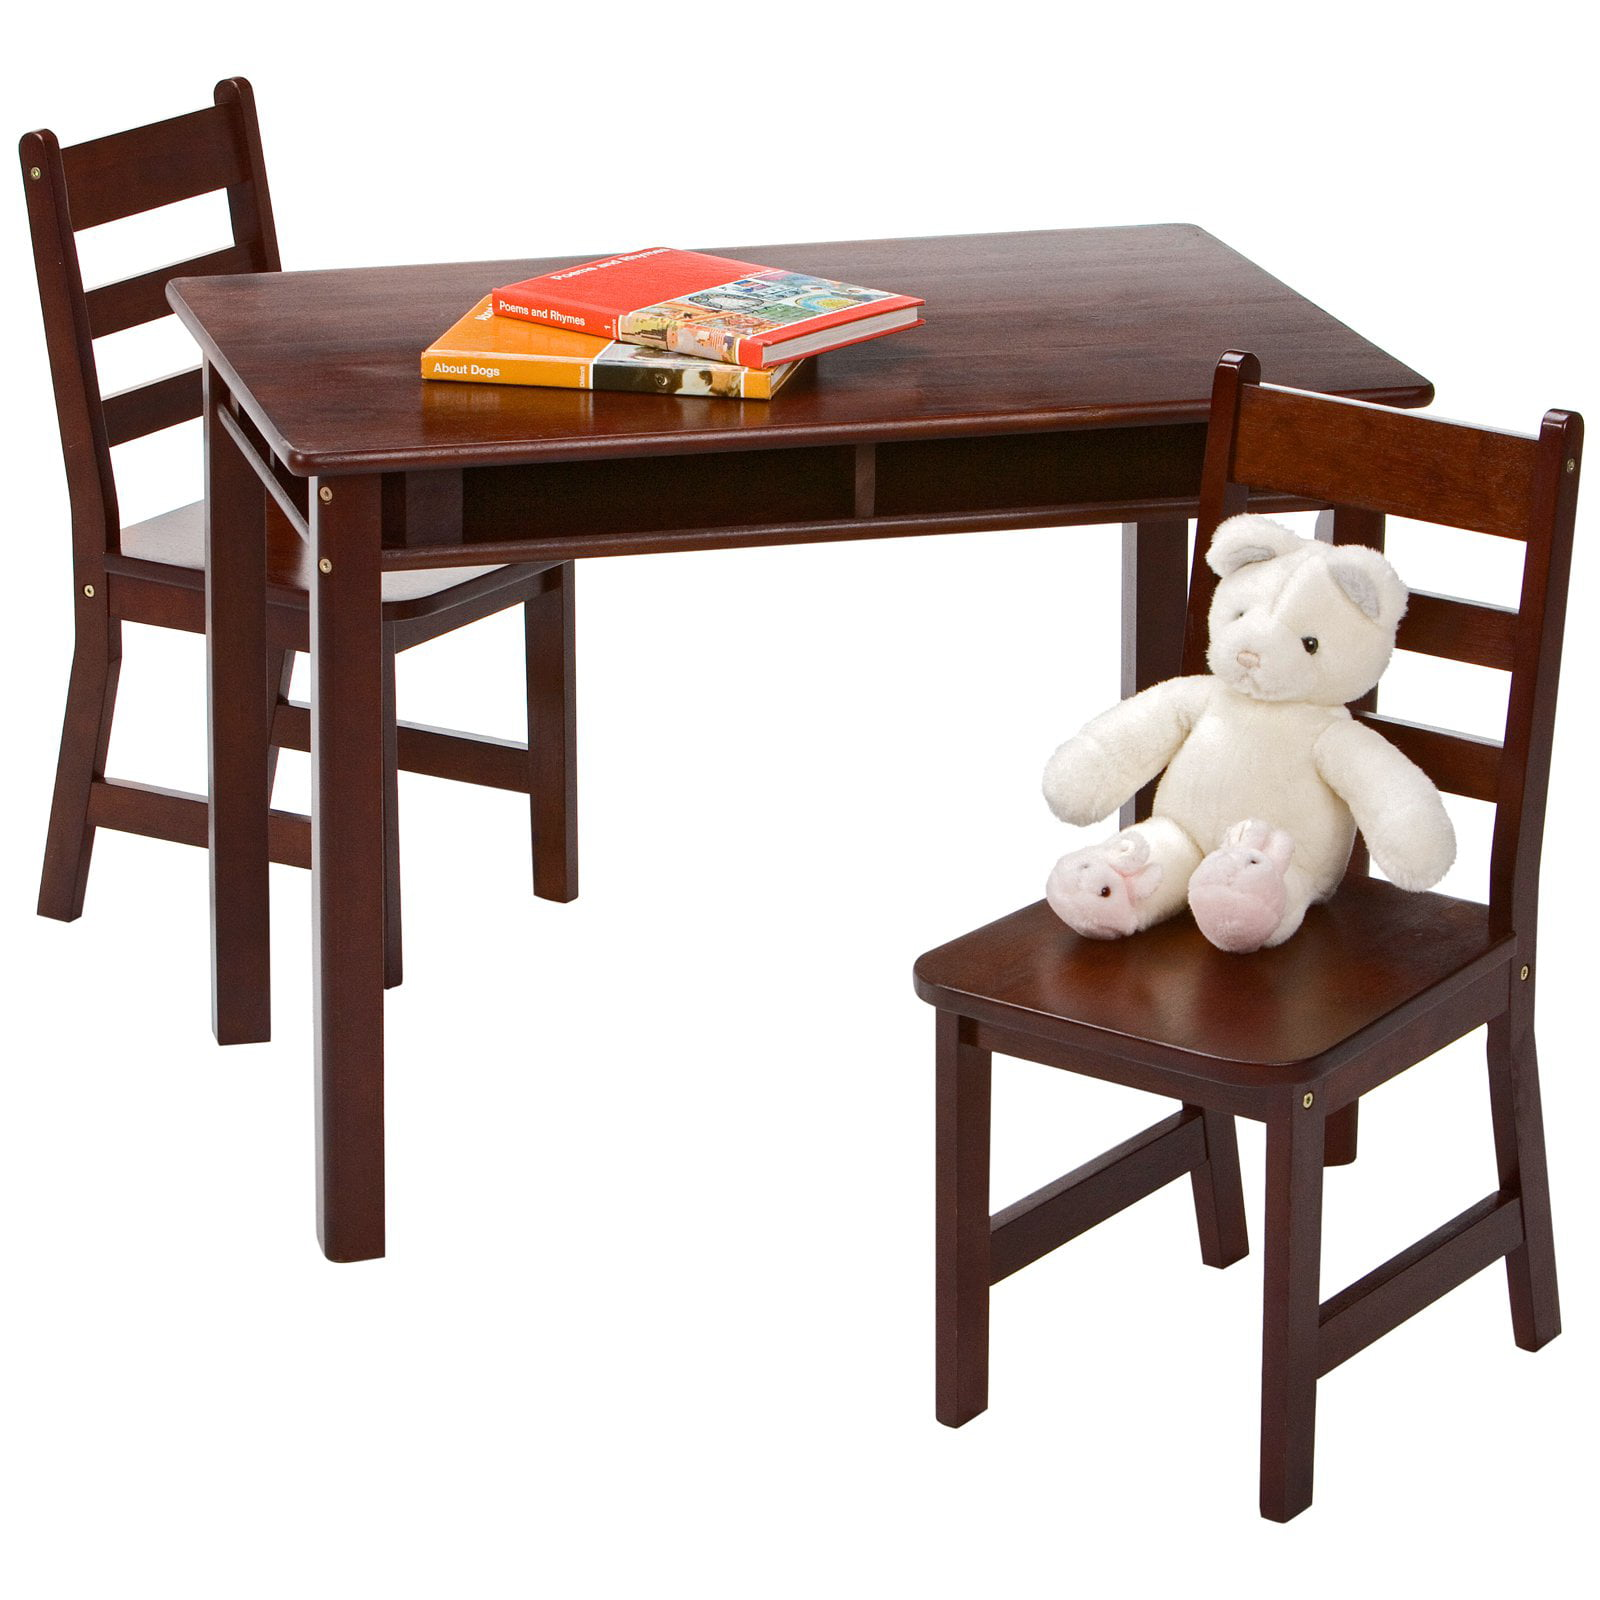 Lipper Childrens Rectangular Table And 2 Chairs Set With